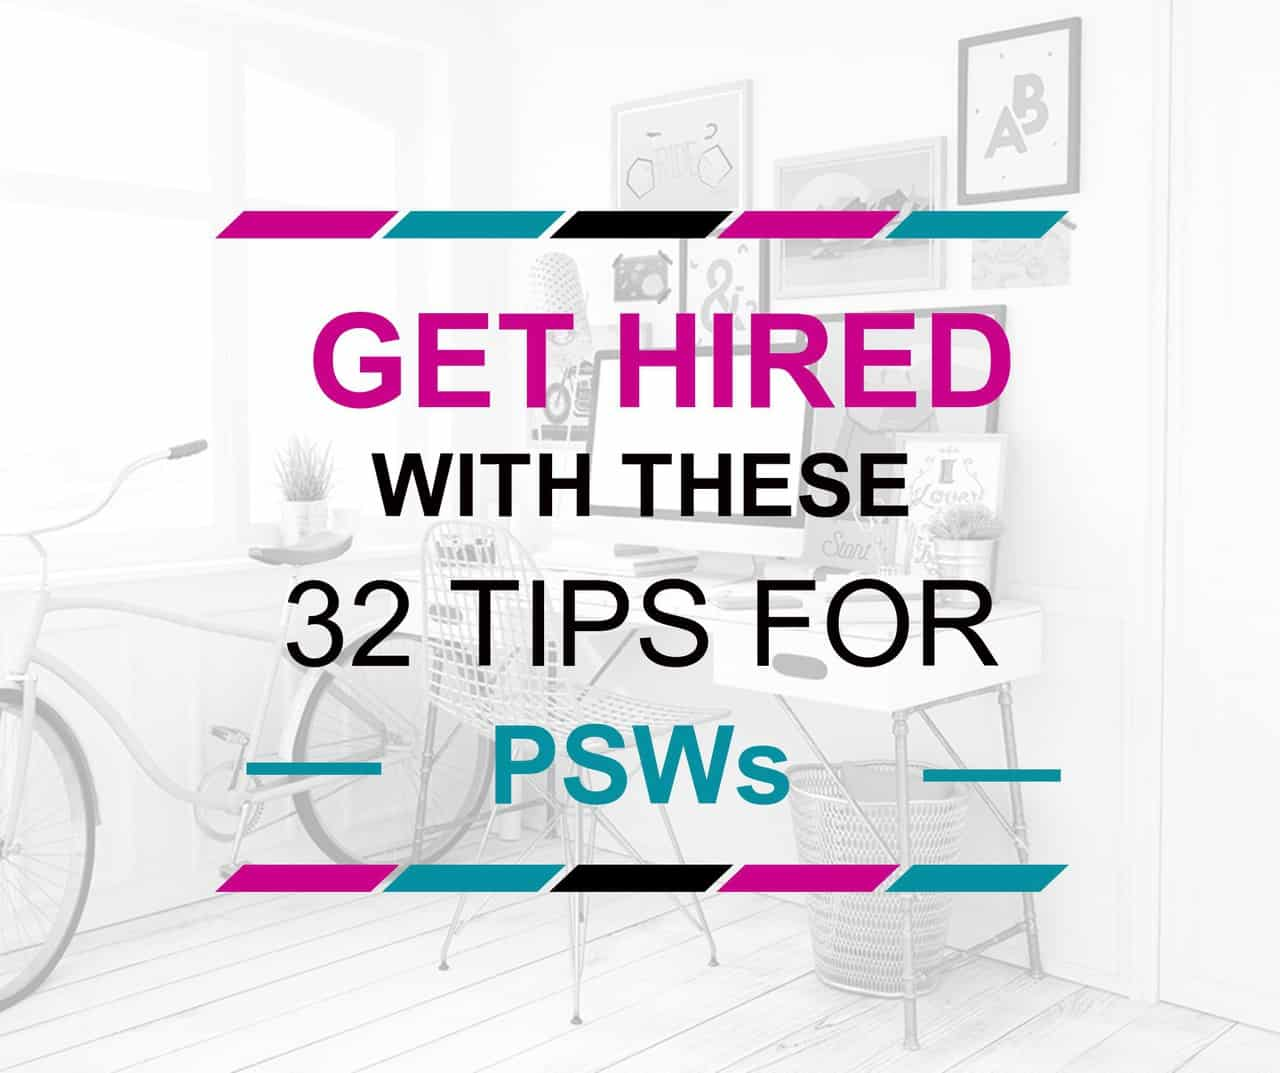 32 tips to get hired for psws